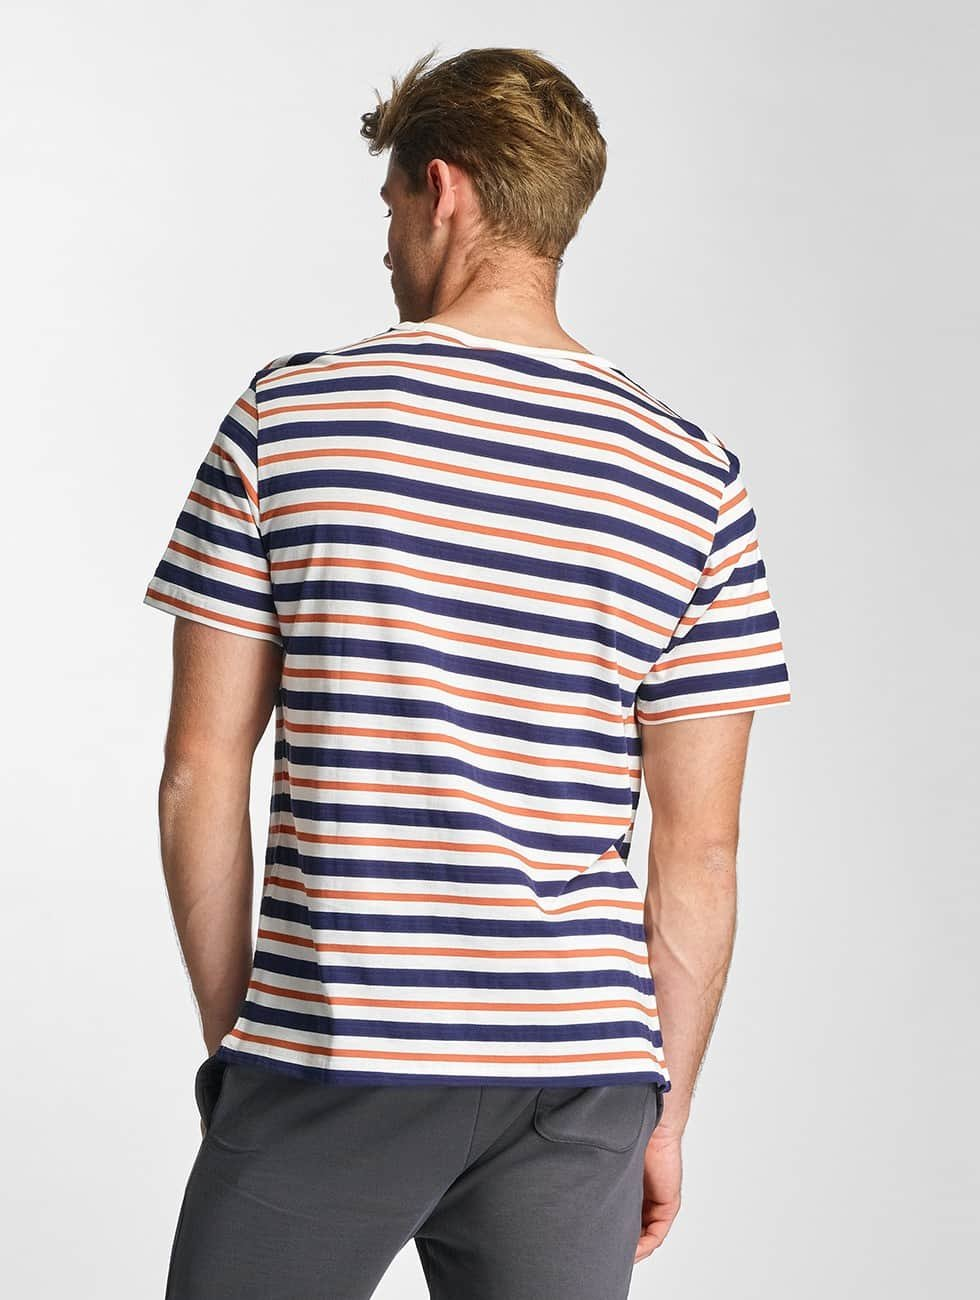 Lee T-Shirt Stripe white